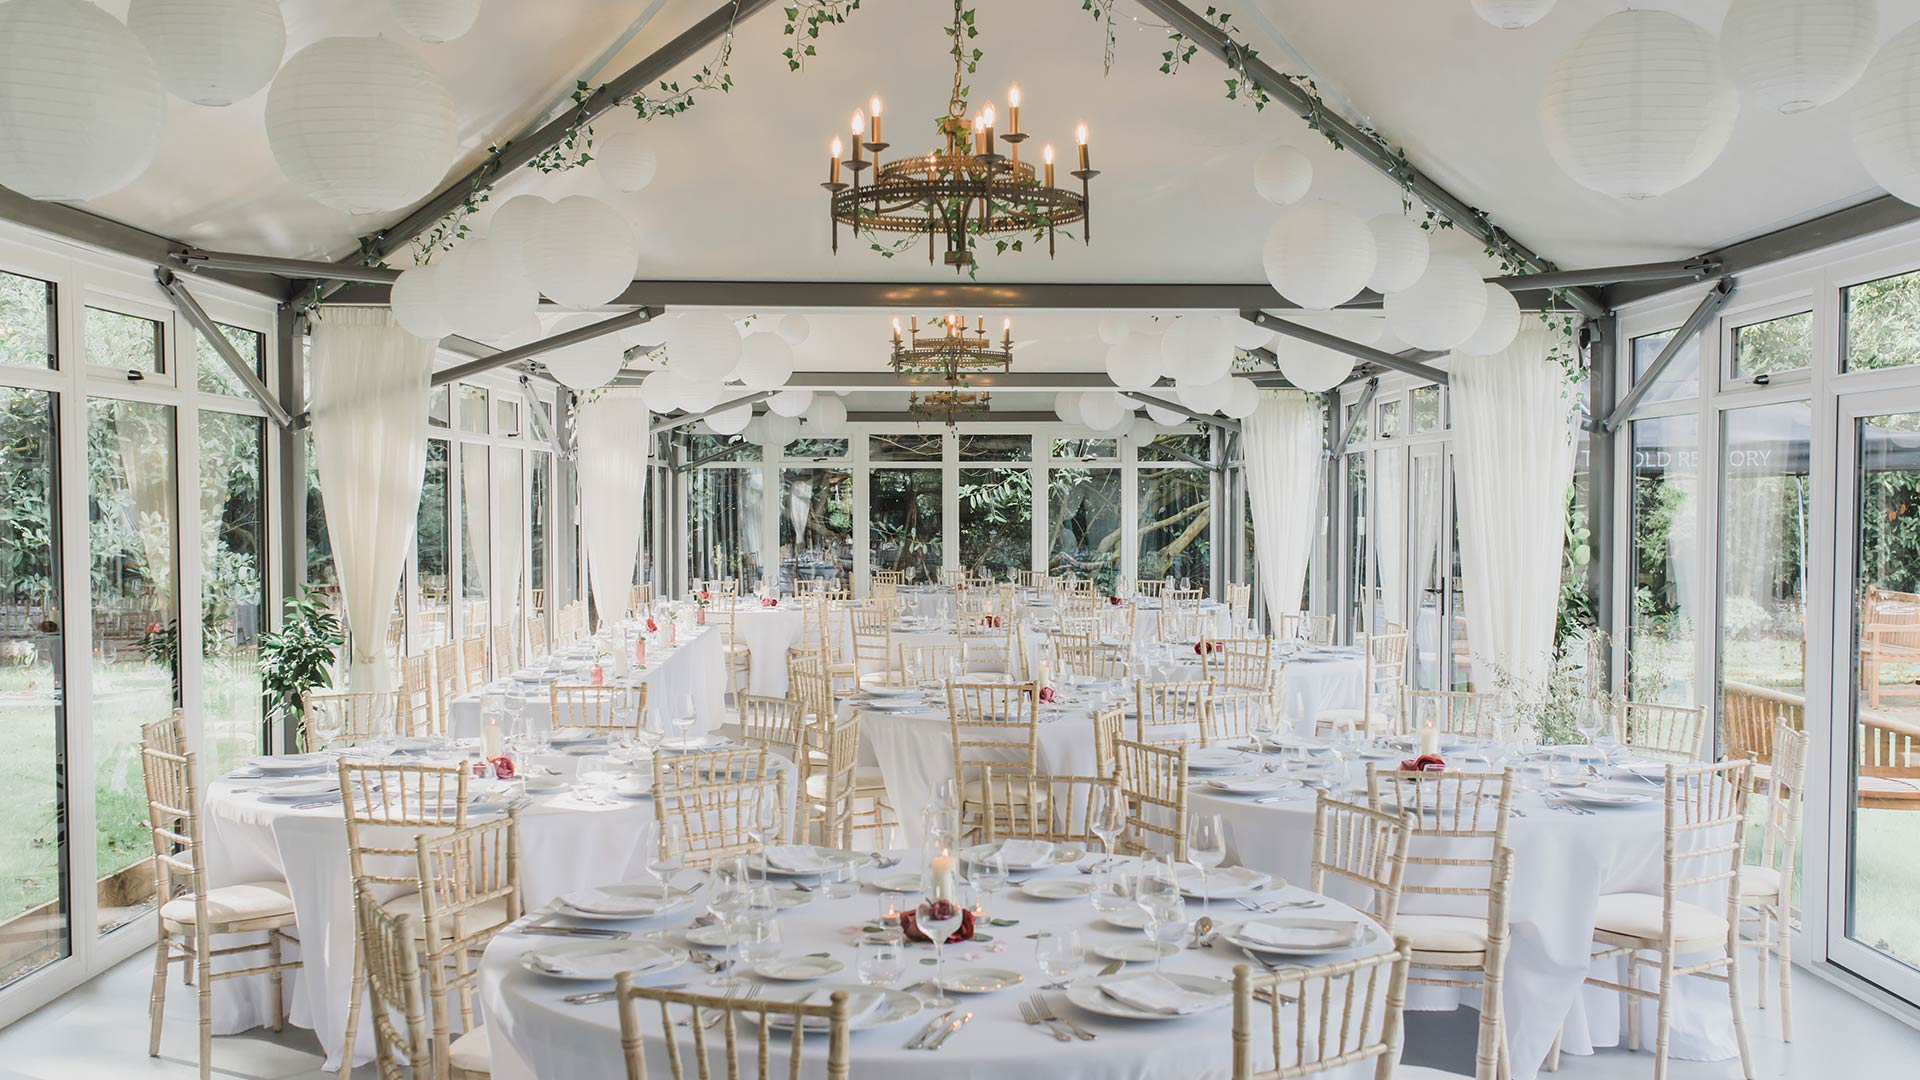 The-old-rectory-wedding-venue-header-2